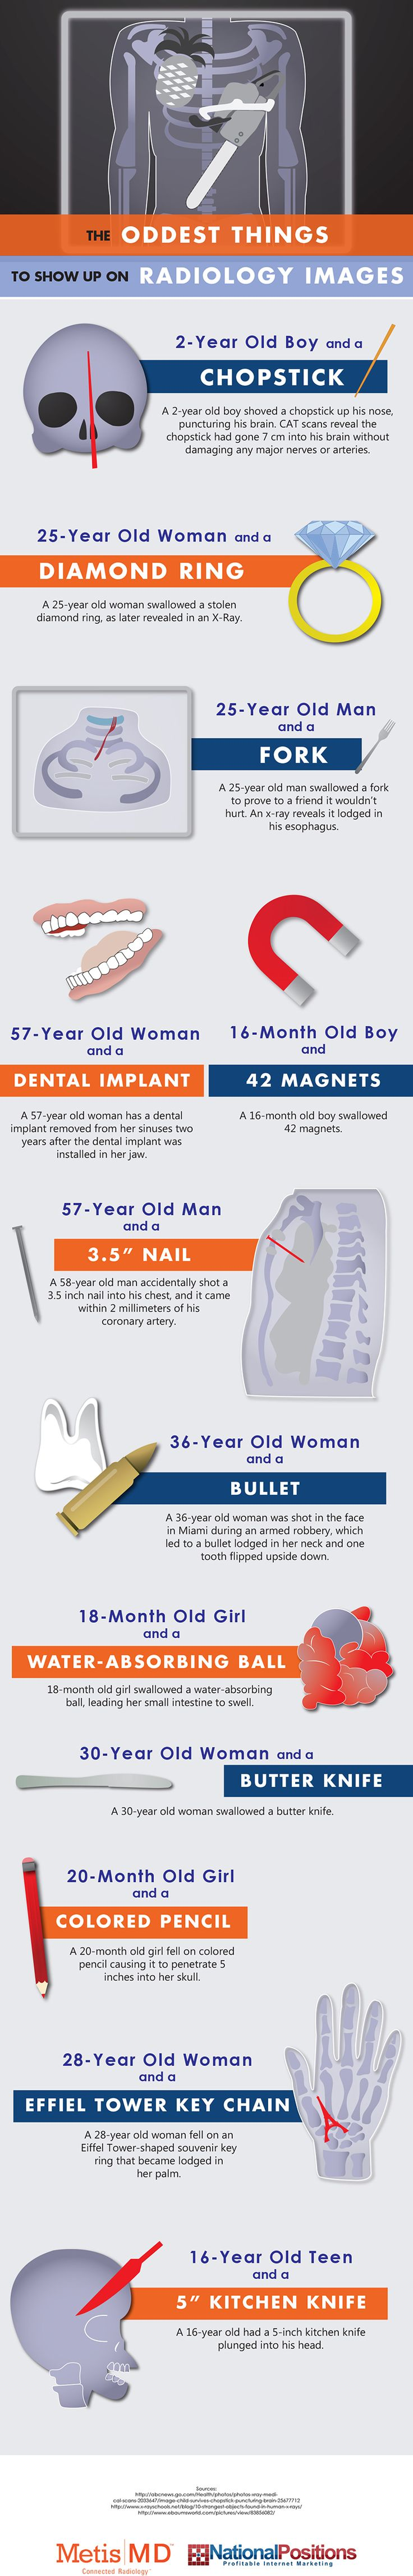 Infographic Of The Day: The Oddest Things To Show Up On Radiology Images